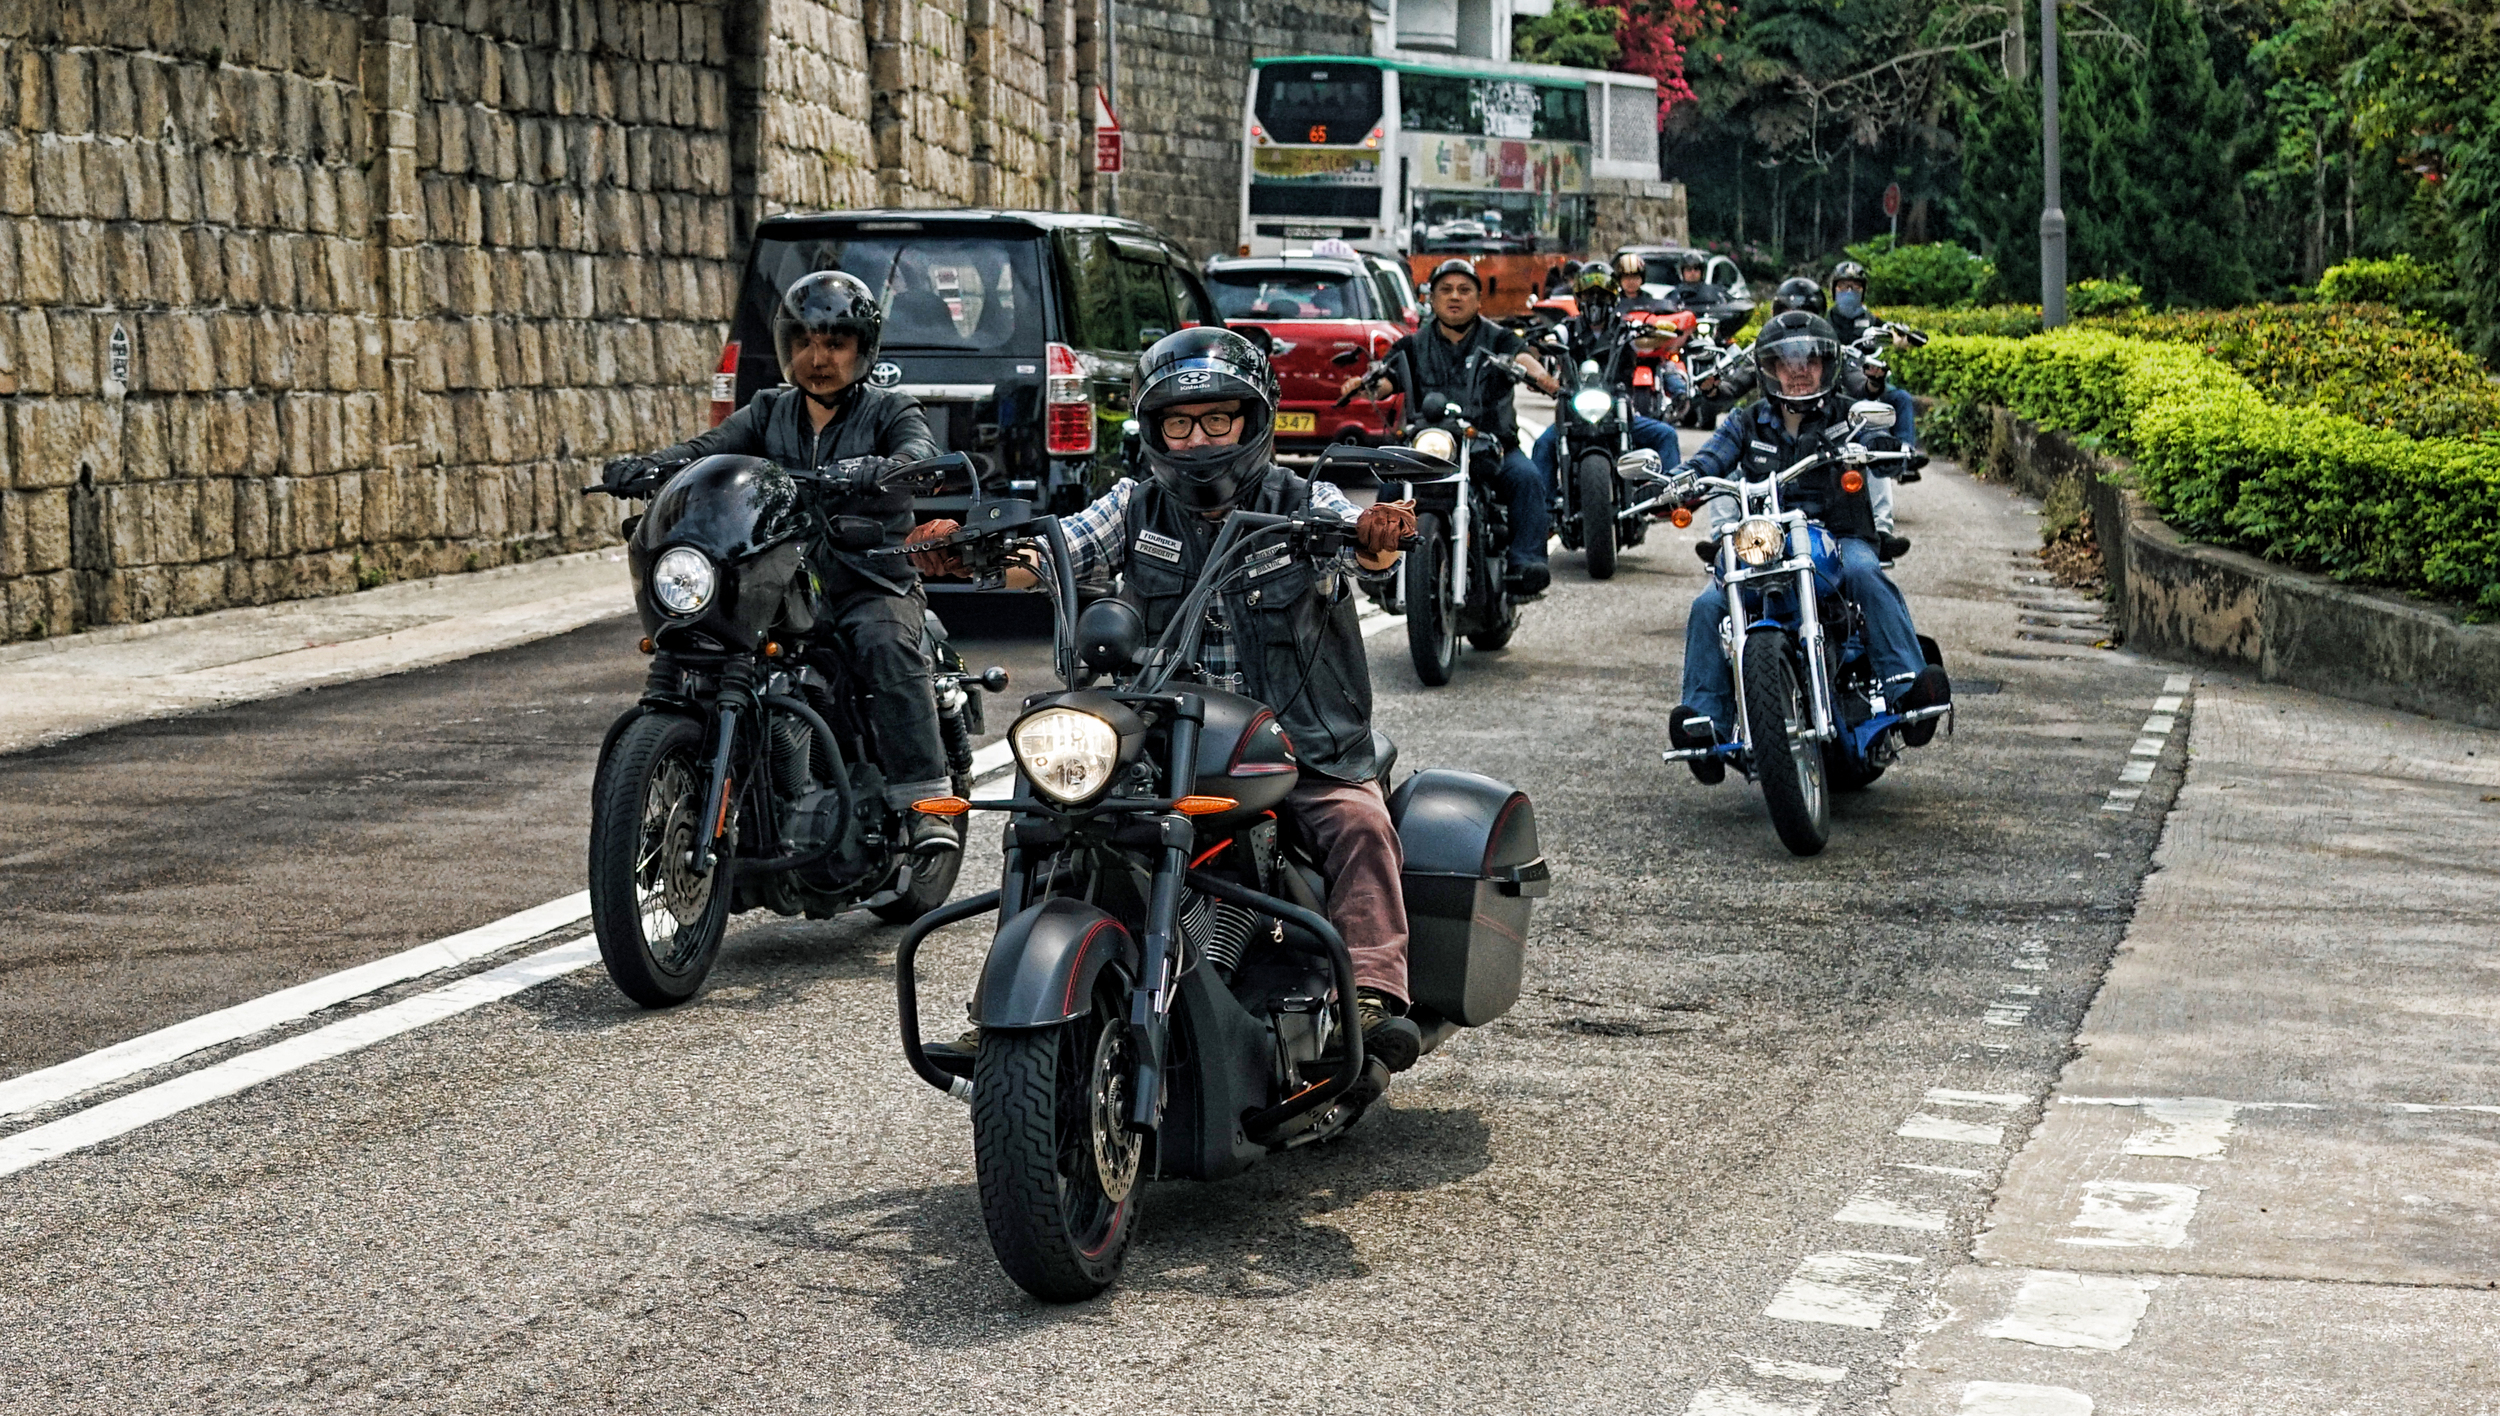 We seem to have quite a few Harley Davidson Motorbike Clubs in Hong Kong, pretty cool dudes!